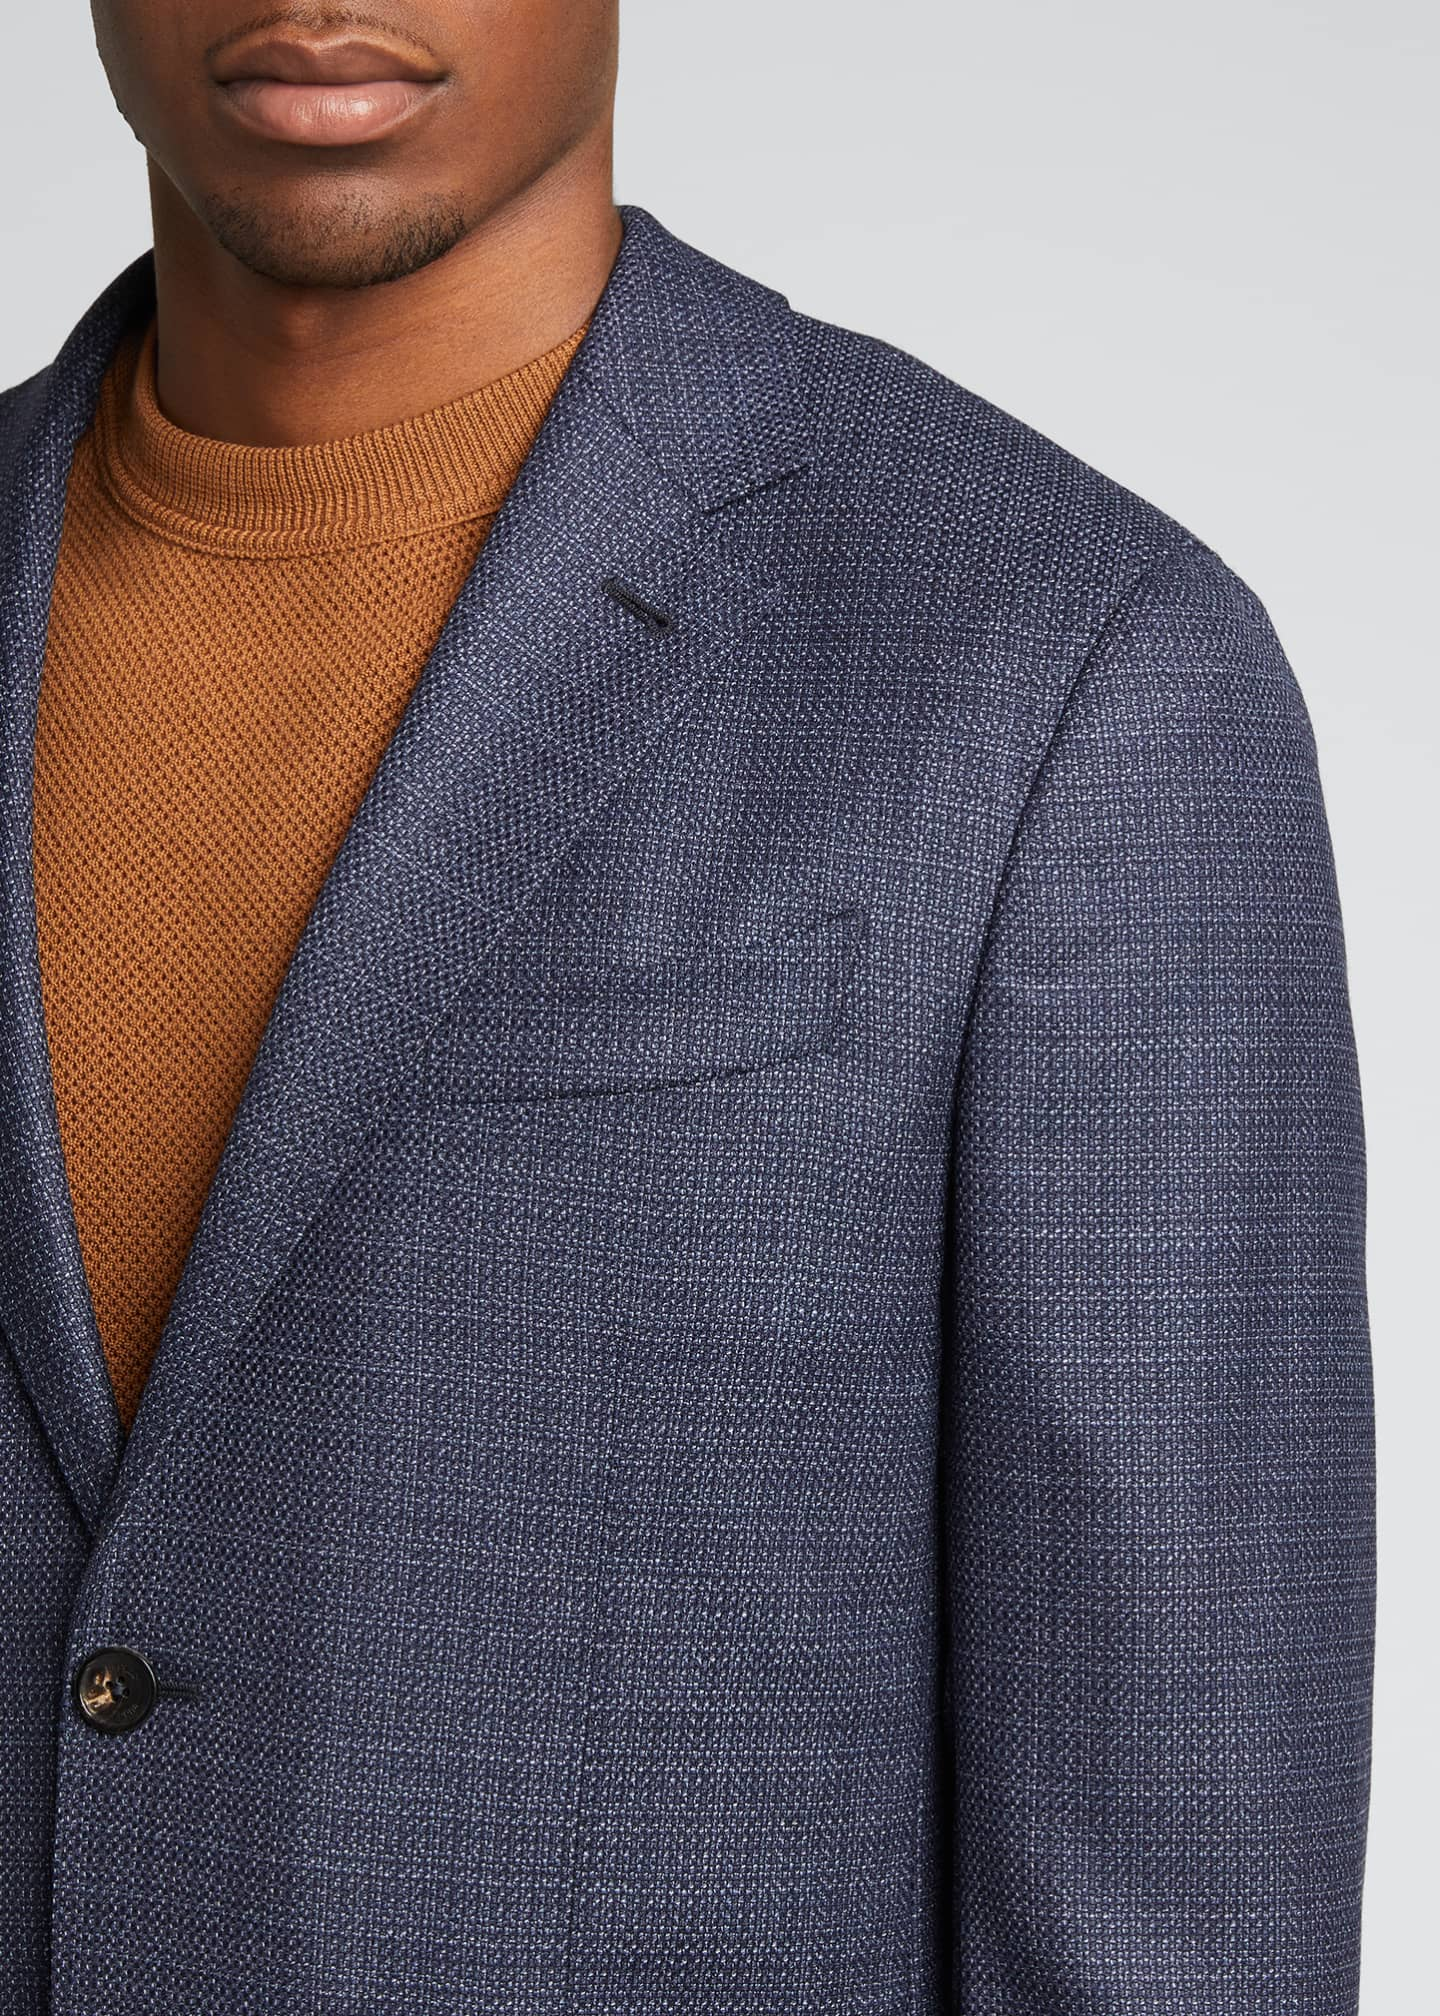 Image 4 of 5: Men's Heathered Solid Blazer